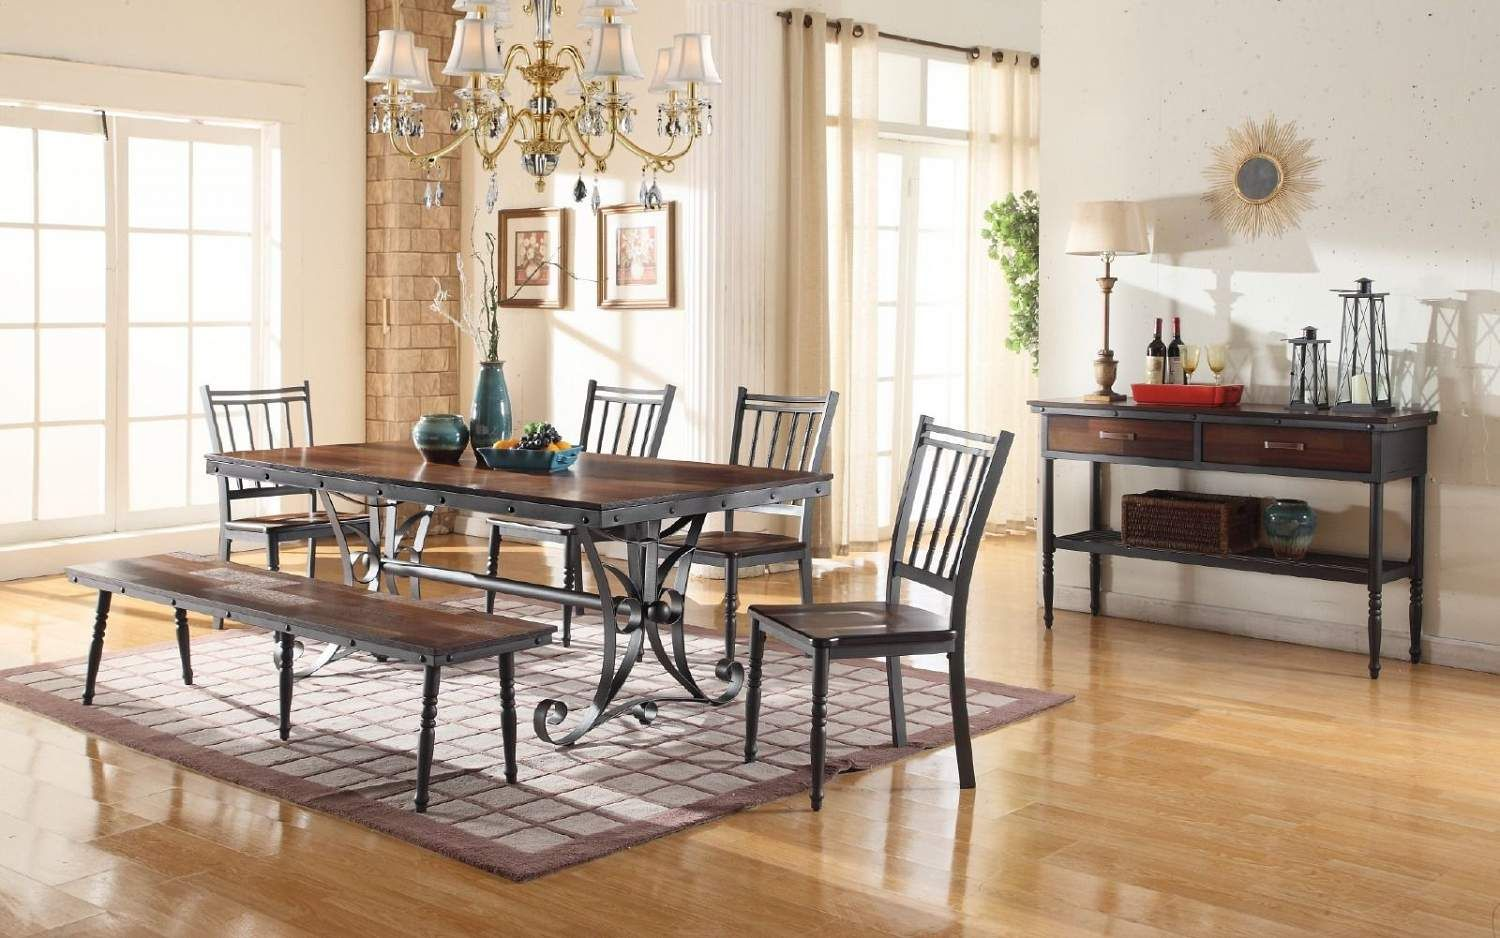 Rustic 6 Piece Dining Table Ffo Home Festive Dining Metal